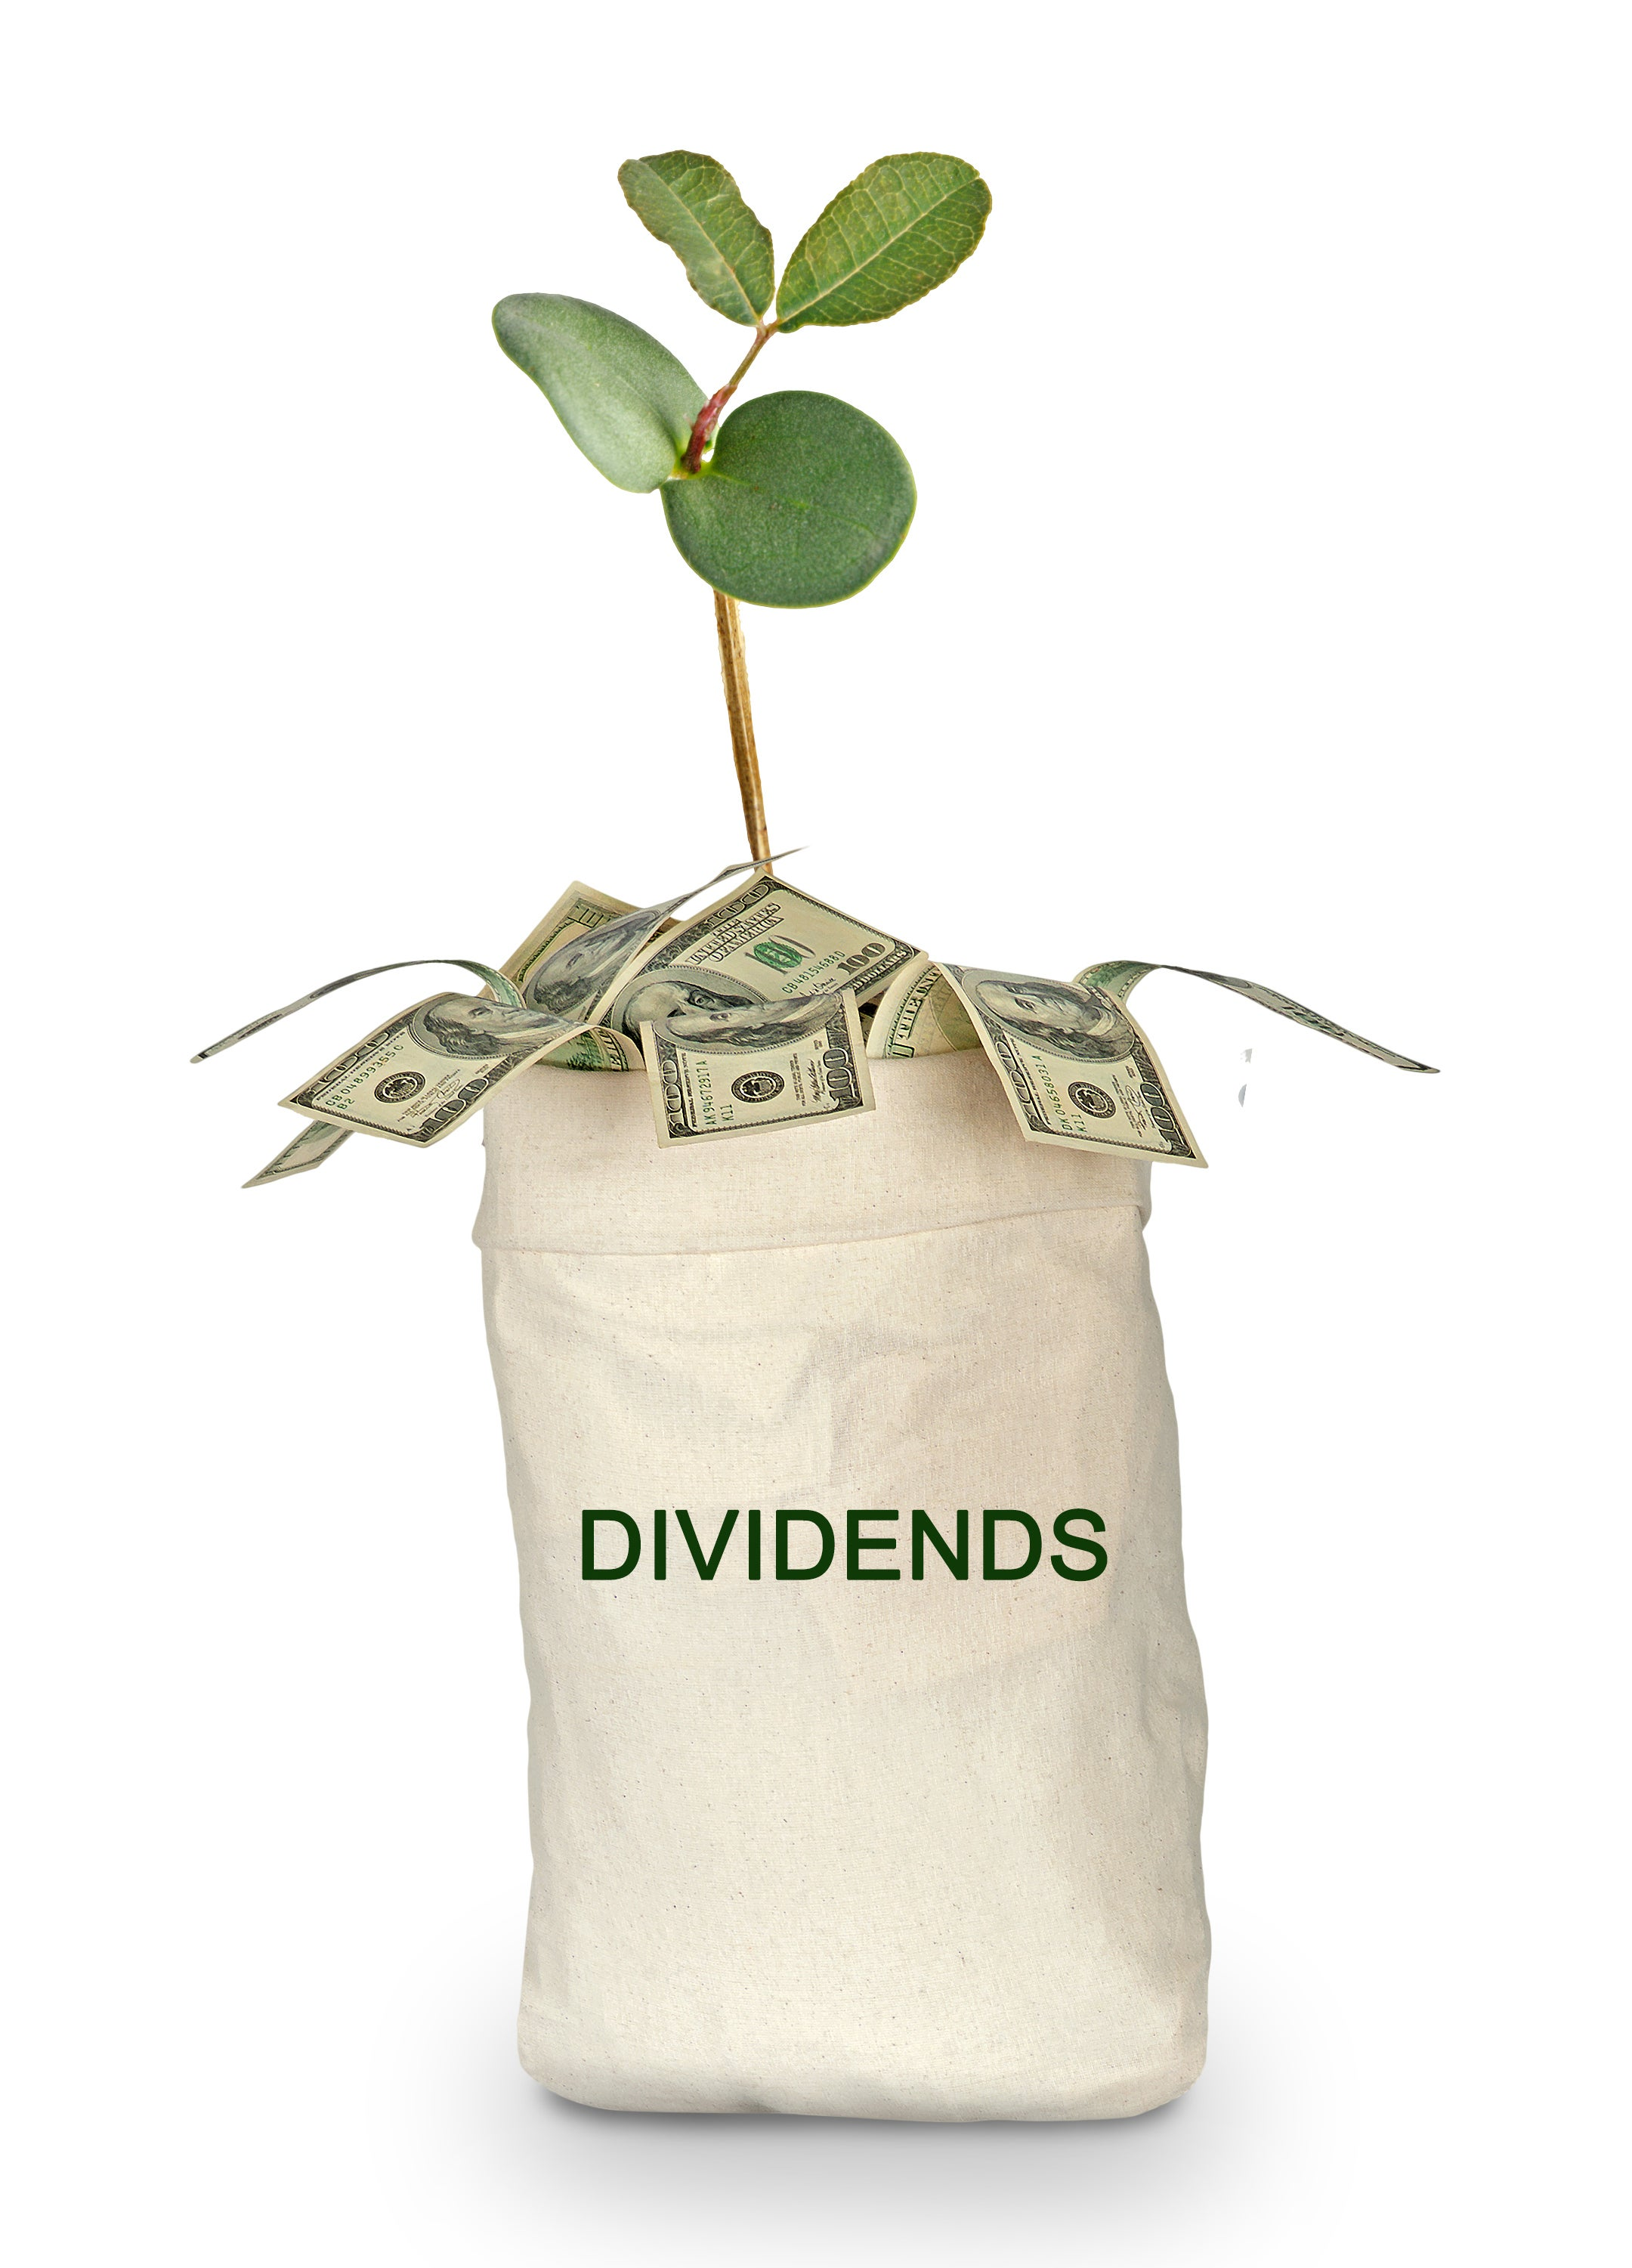 Earn Monthly Dividend Income By Investing in These 3 Stocks | The Motley Fool